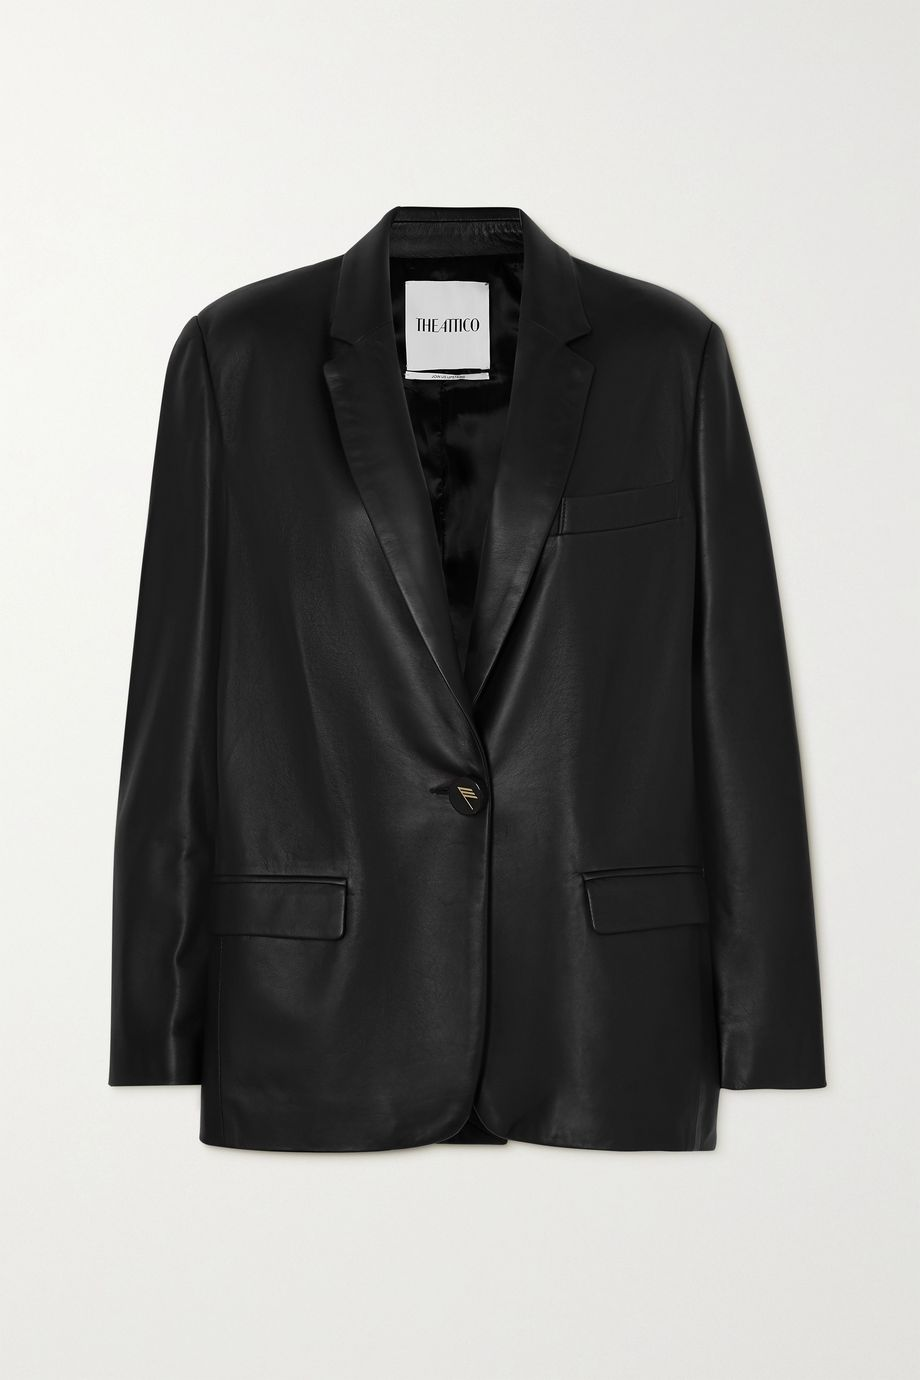 The Attico Leather blazer